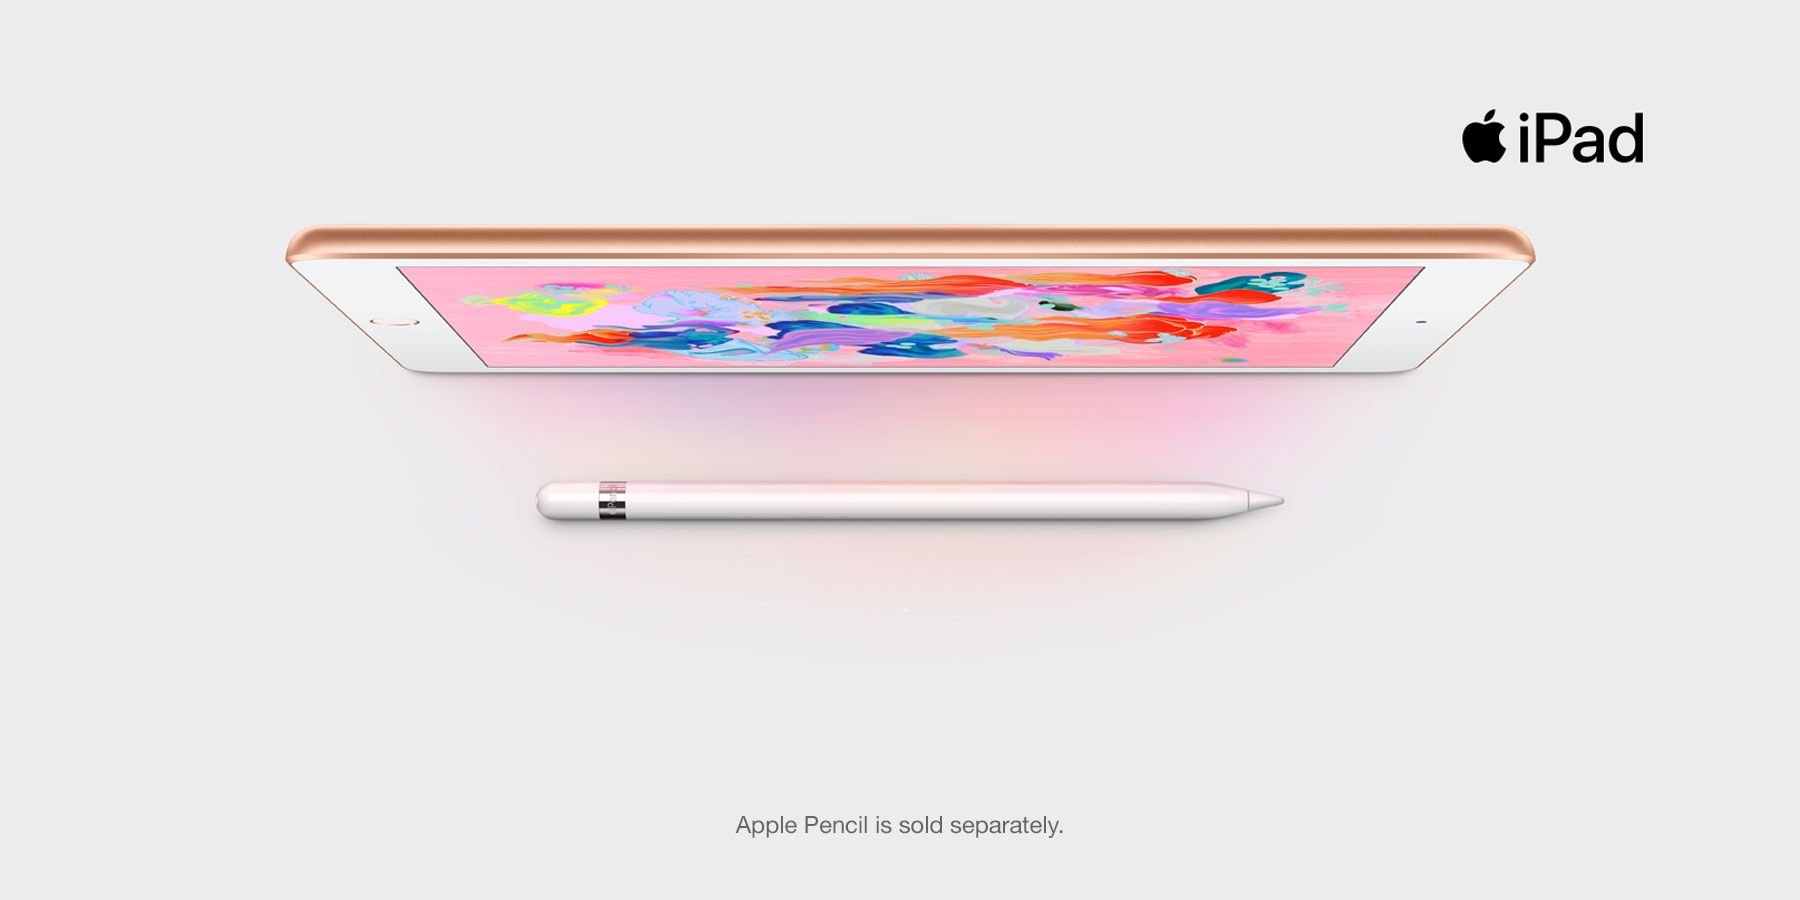 iPad - Apple pencil sold seperately